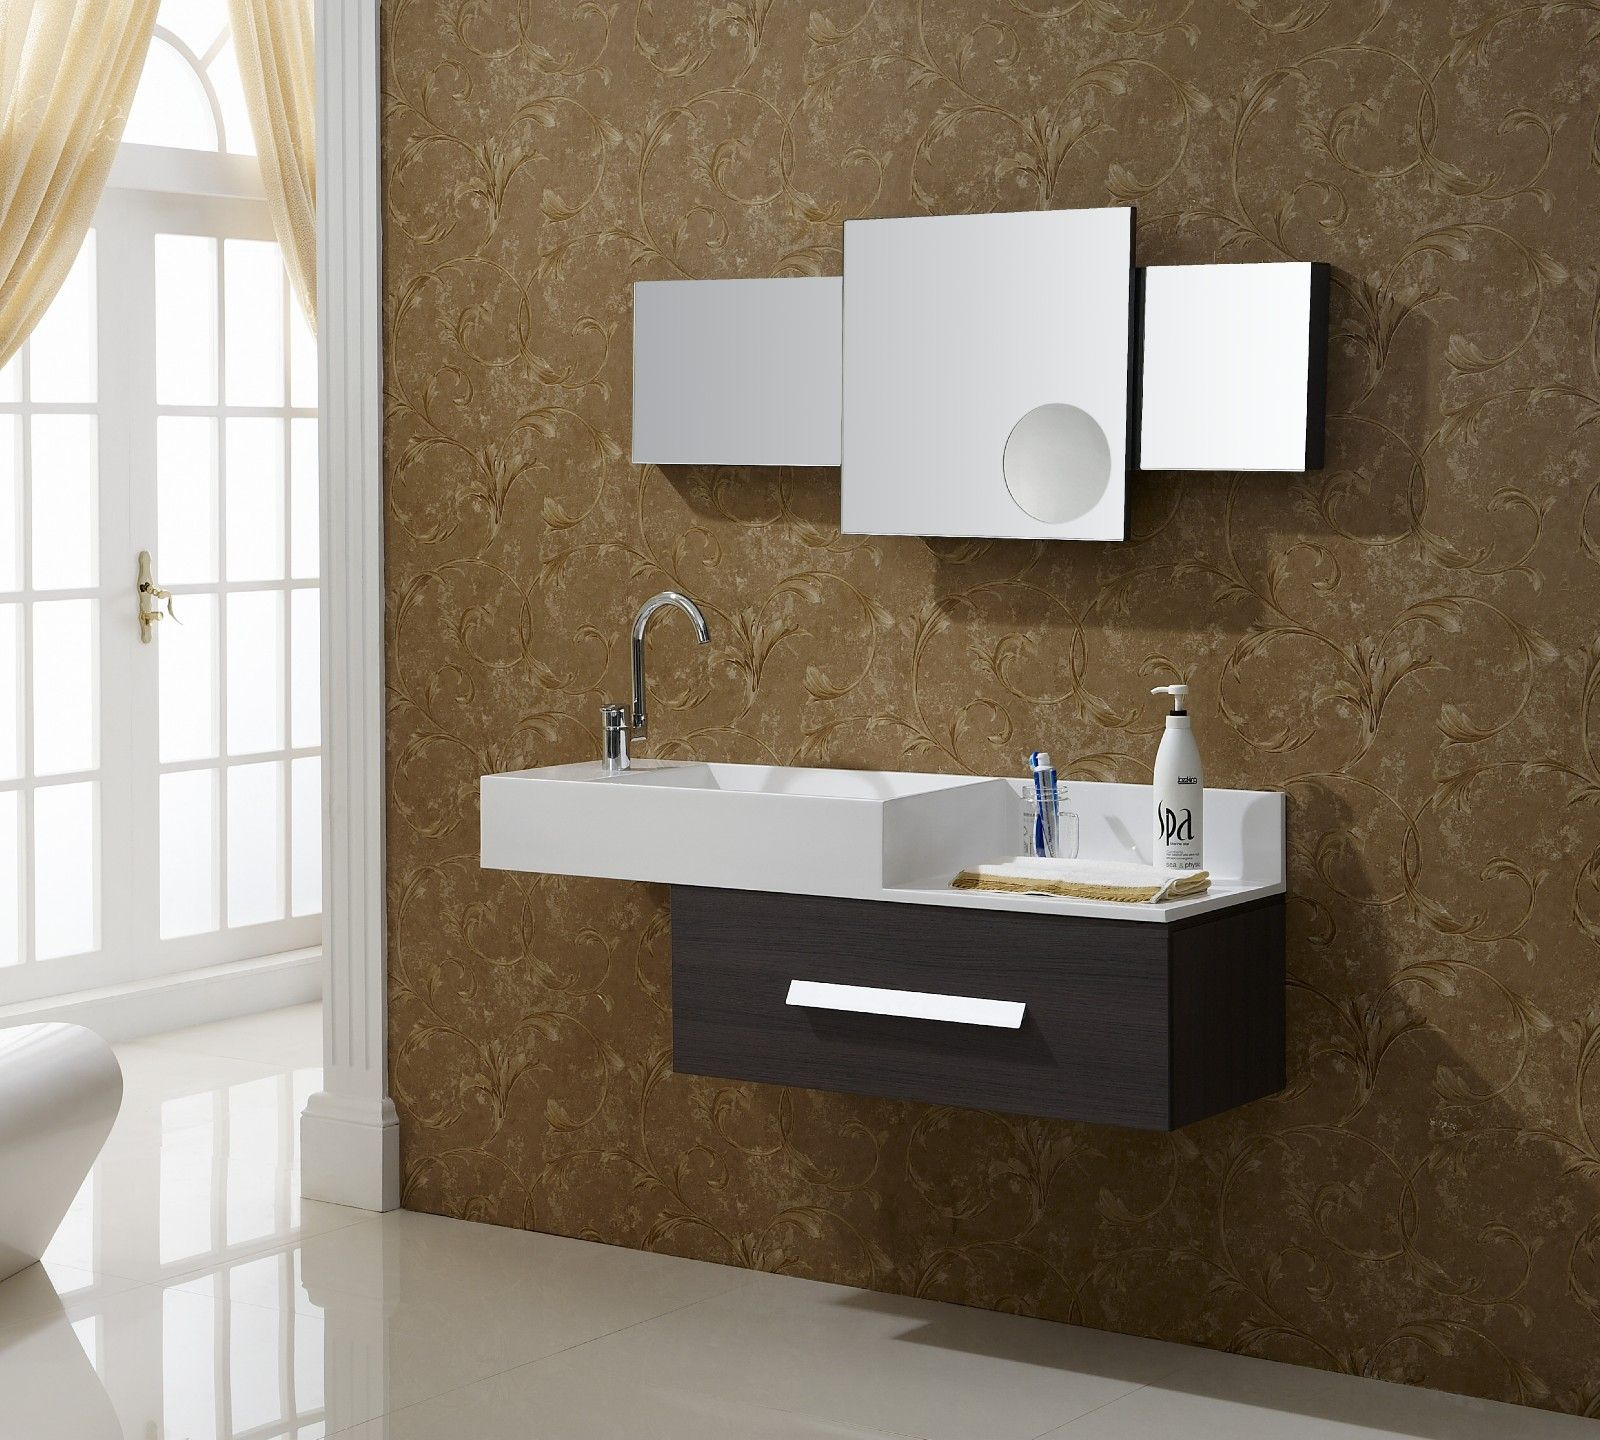 h from shelving bender drawers product cabinet by idi architonic studio bath bathroom en b hanging